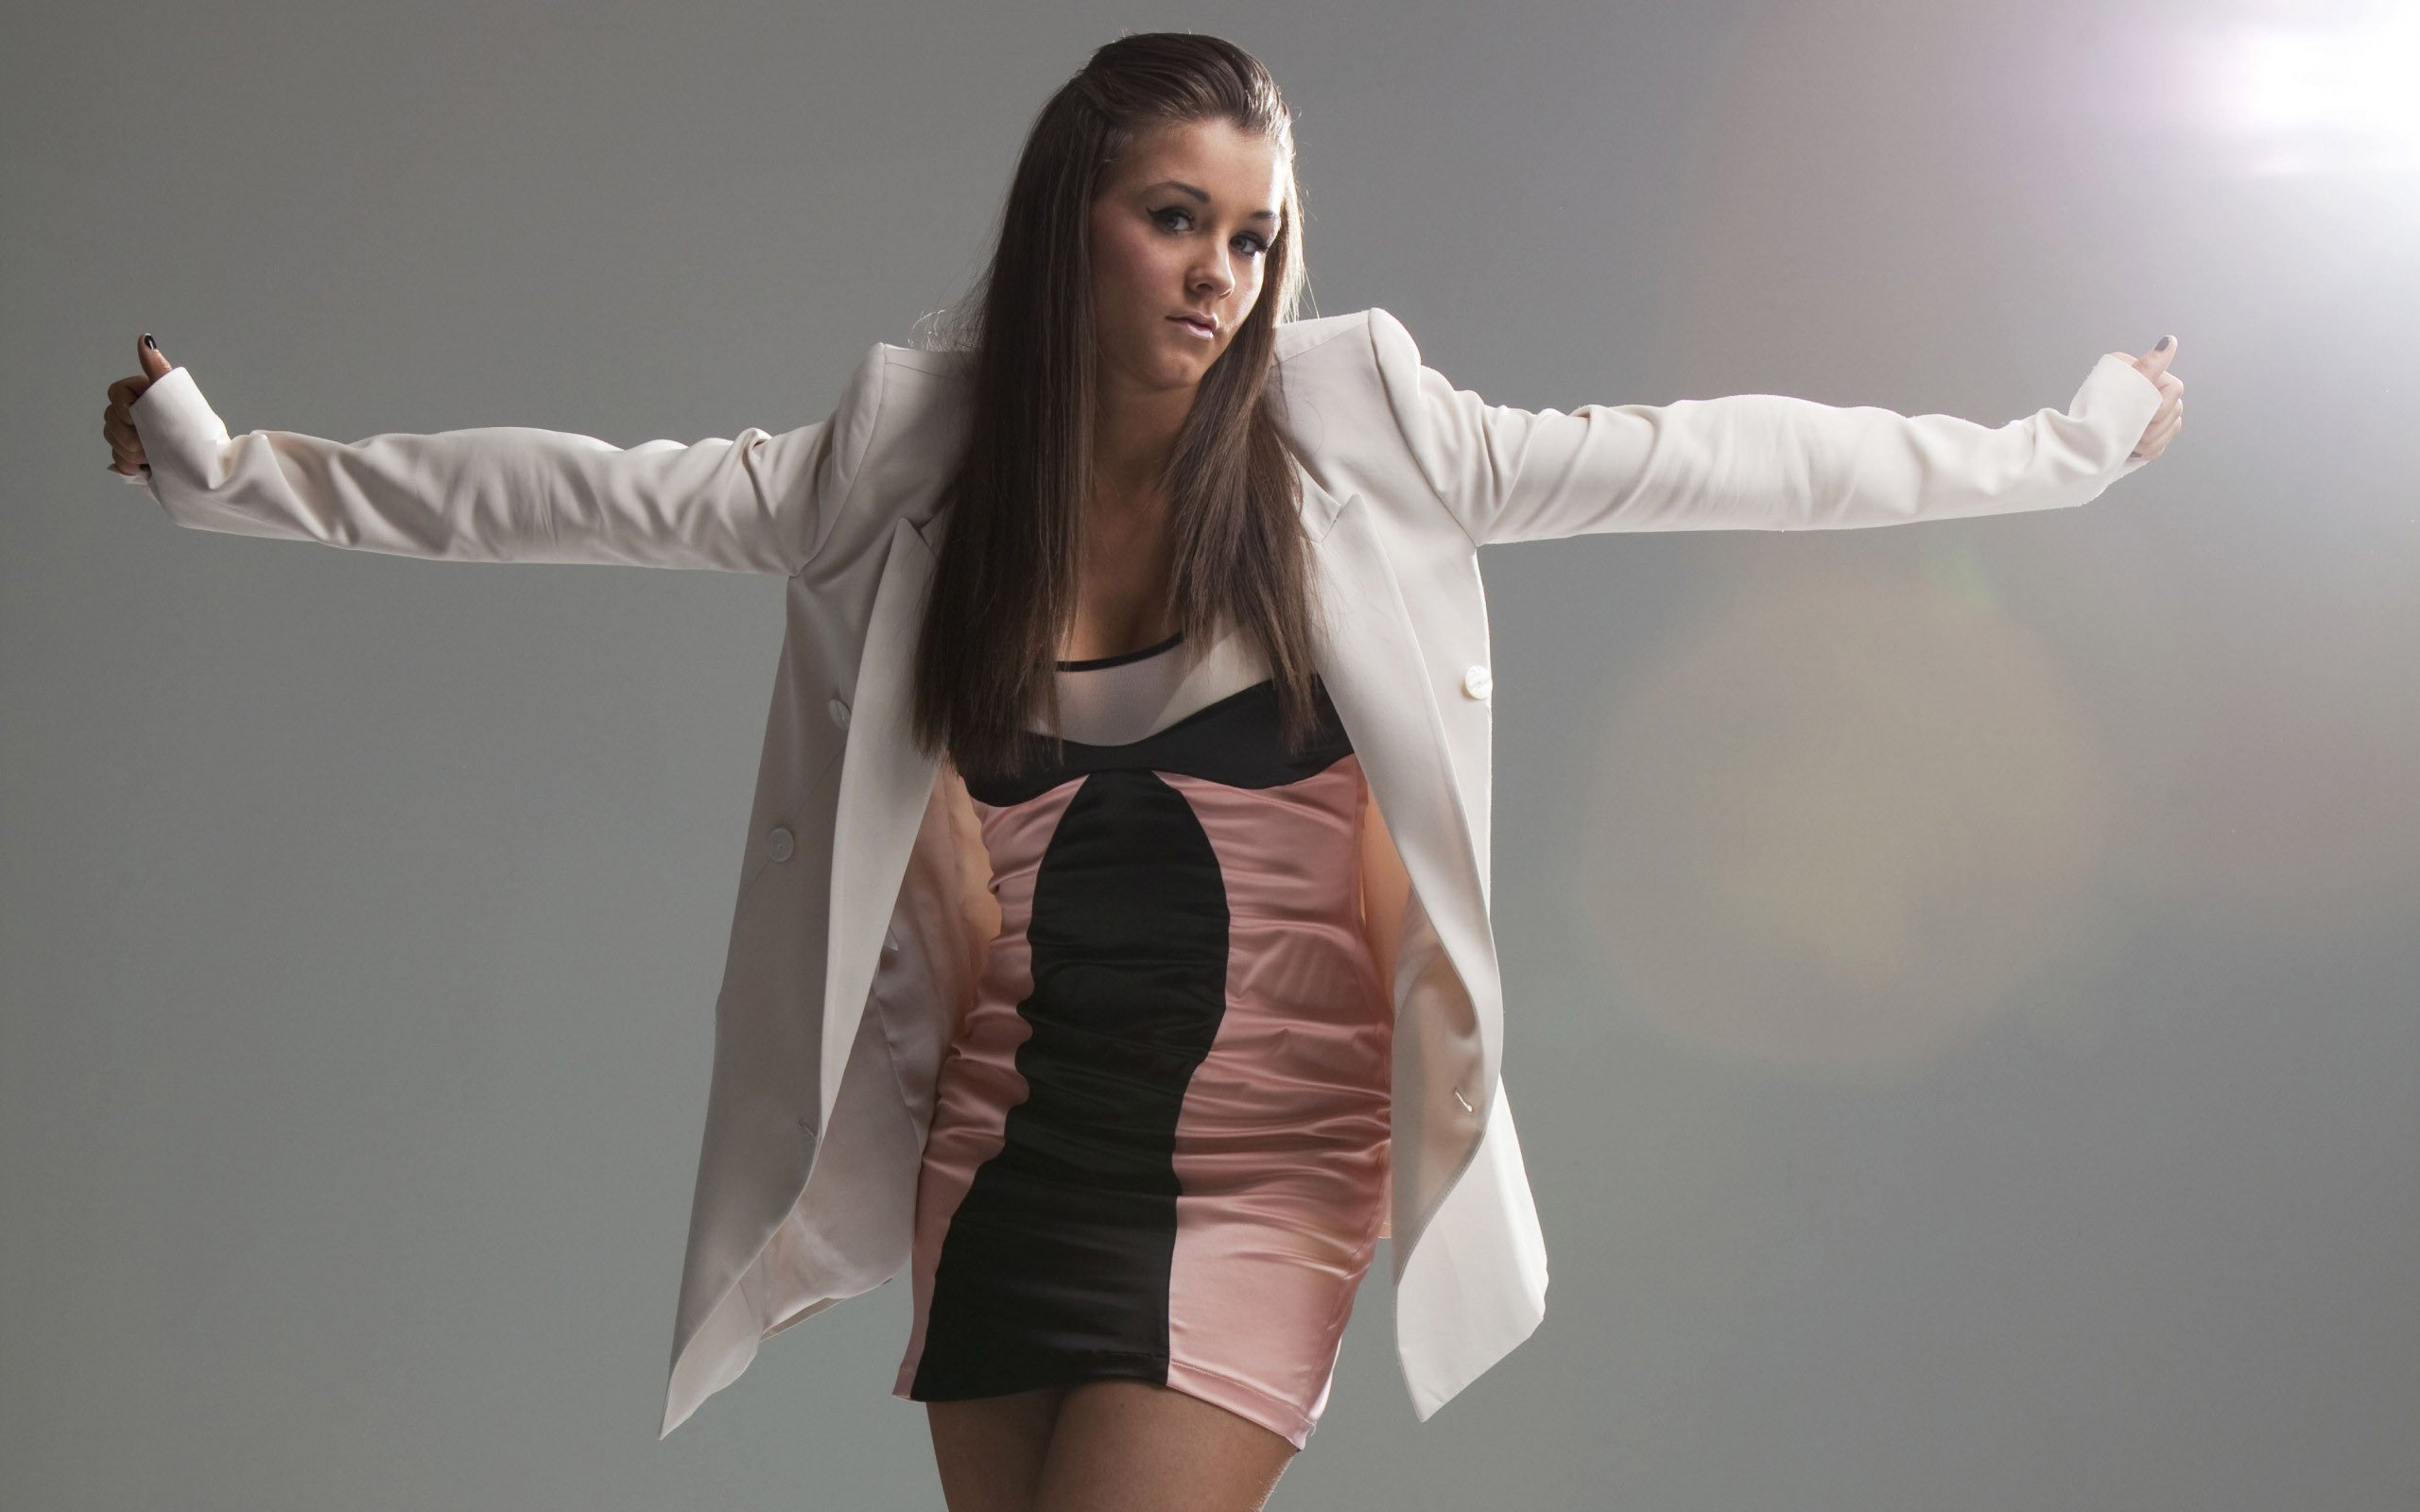 brooke vincent wallpaper background 58643